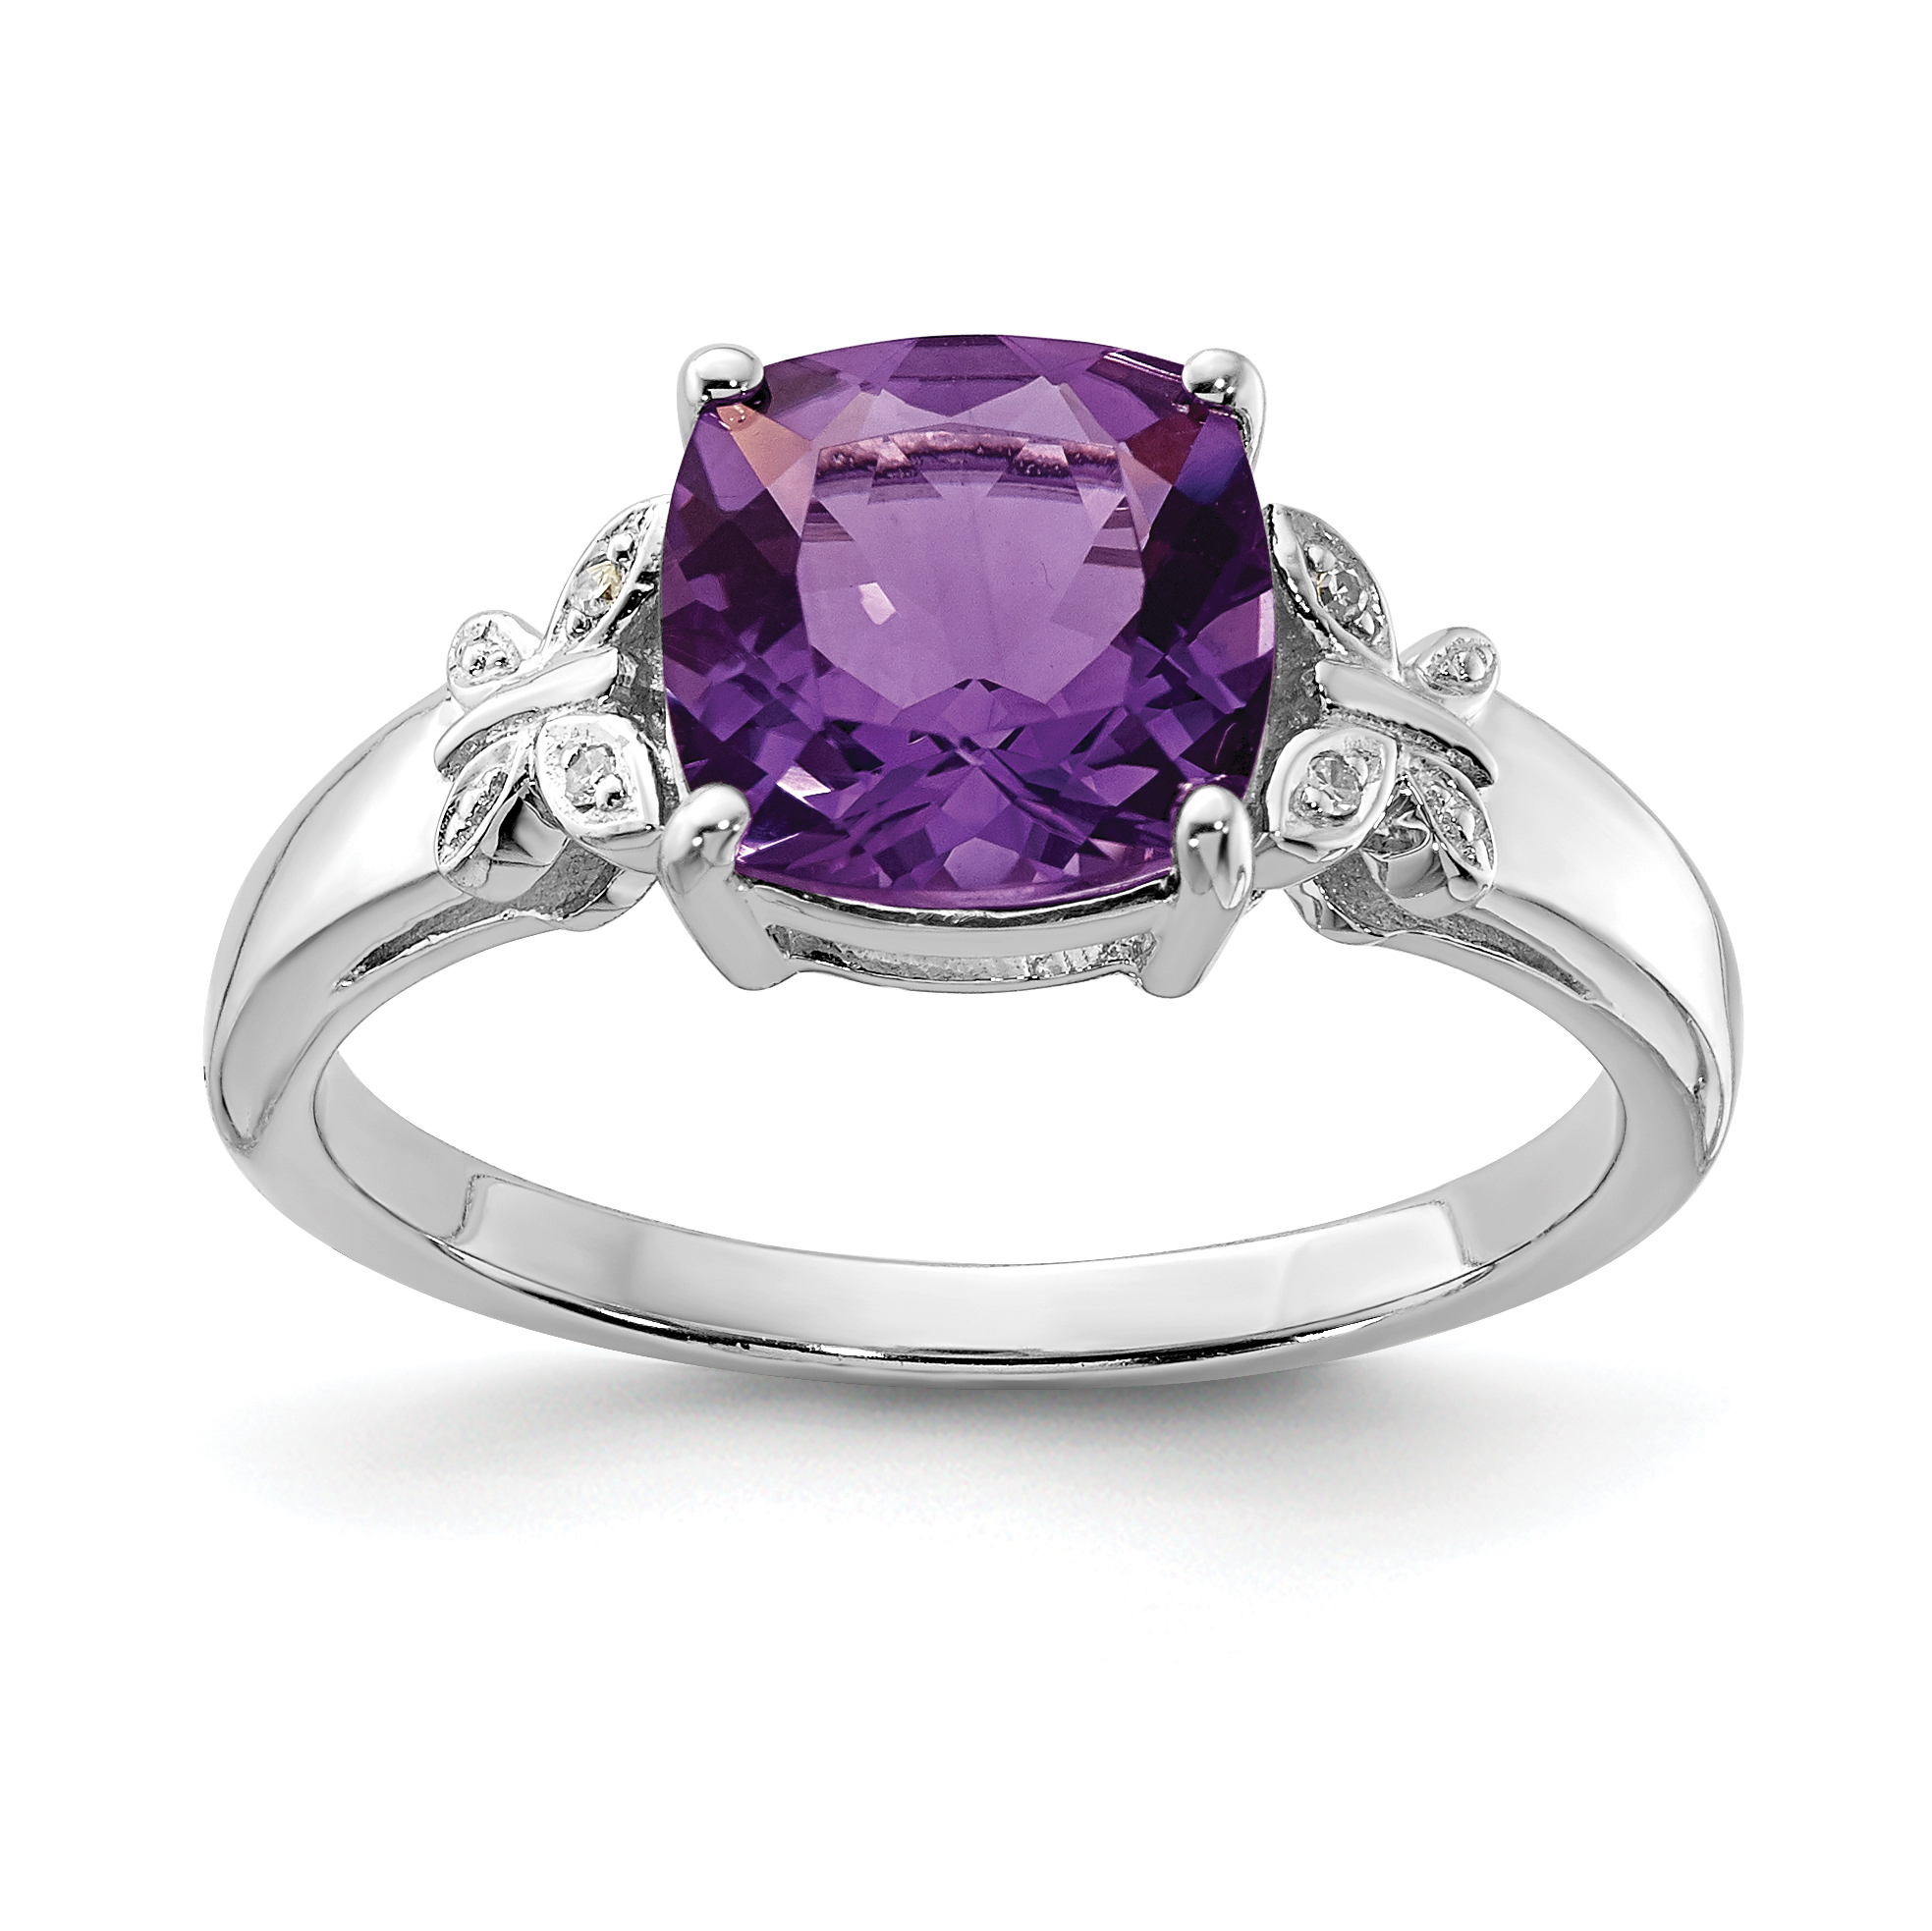 925 Sterling Silver Rhodium Plated Diamond and Amethyst Square Ring - image 2 de 2